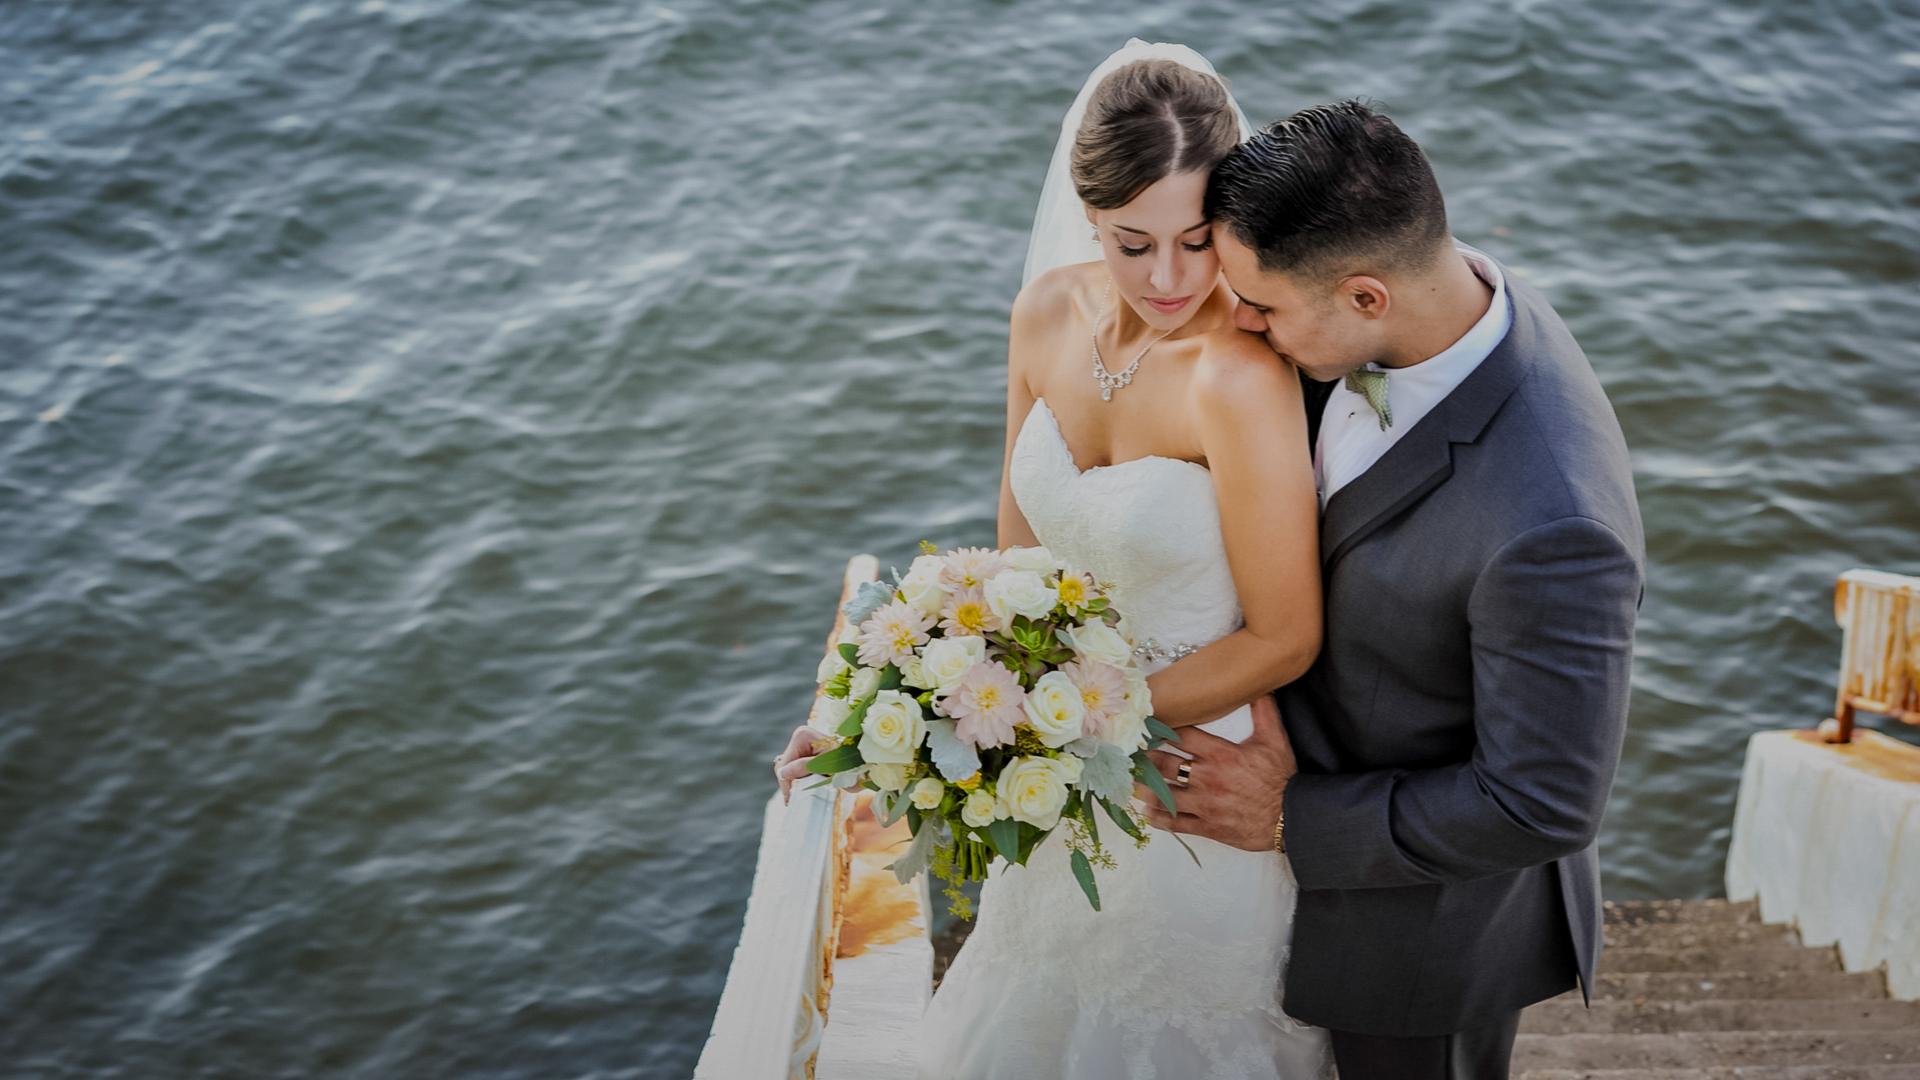 Check portfolios, pricing and availability for wedding photographers in Baltimore